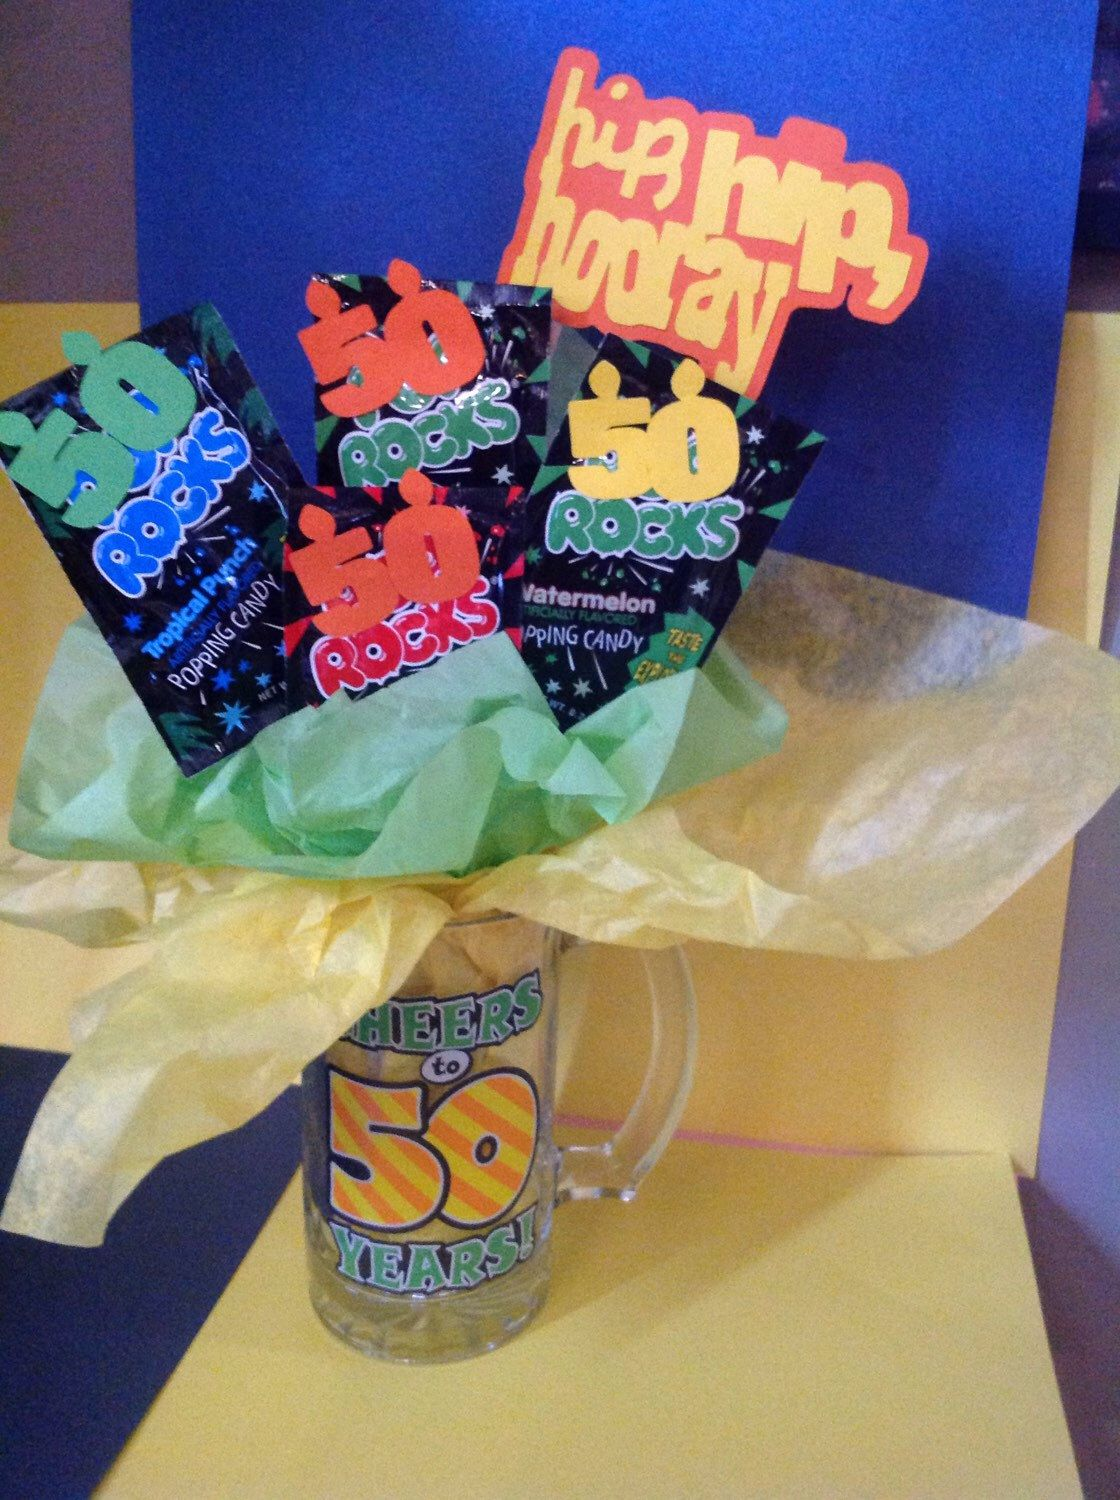 Cheers To 50 Years Rocks Birthday Gift Basket Free Shipping By Megamemories On